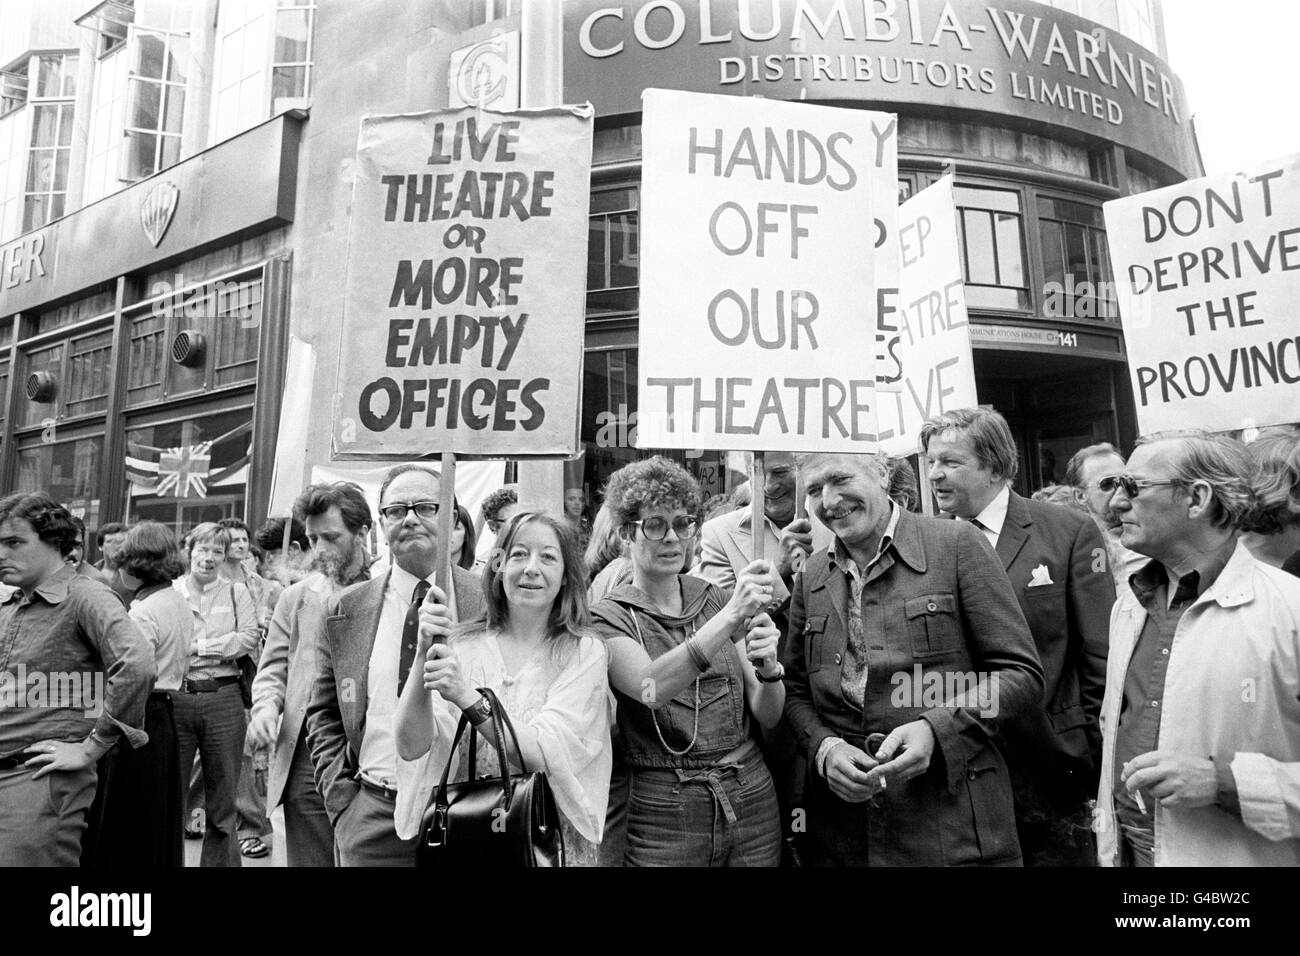 Theatre - Theatre Closures Equity Demonstration - Wardour Street, London Stock Photo